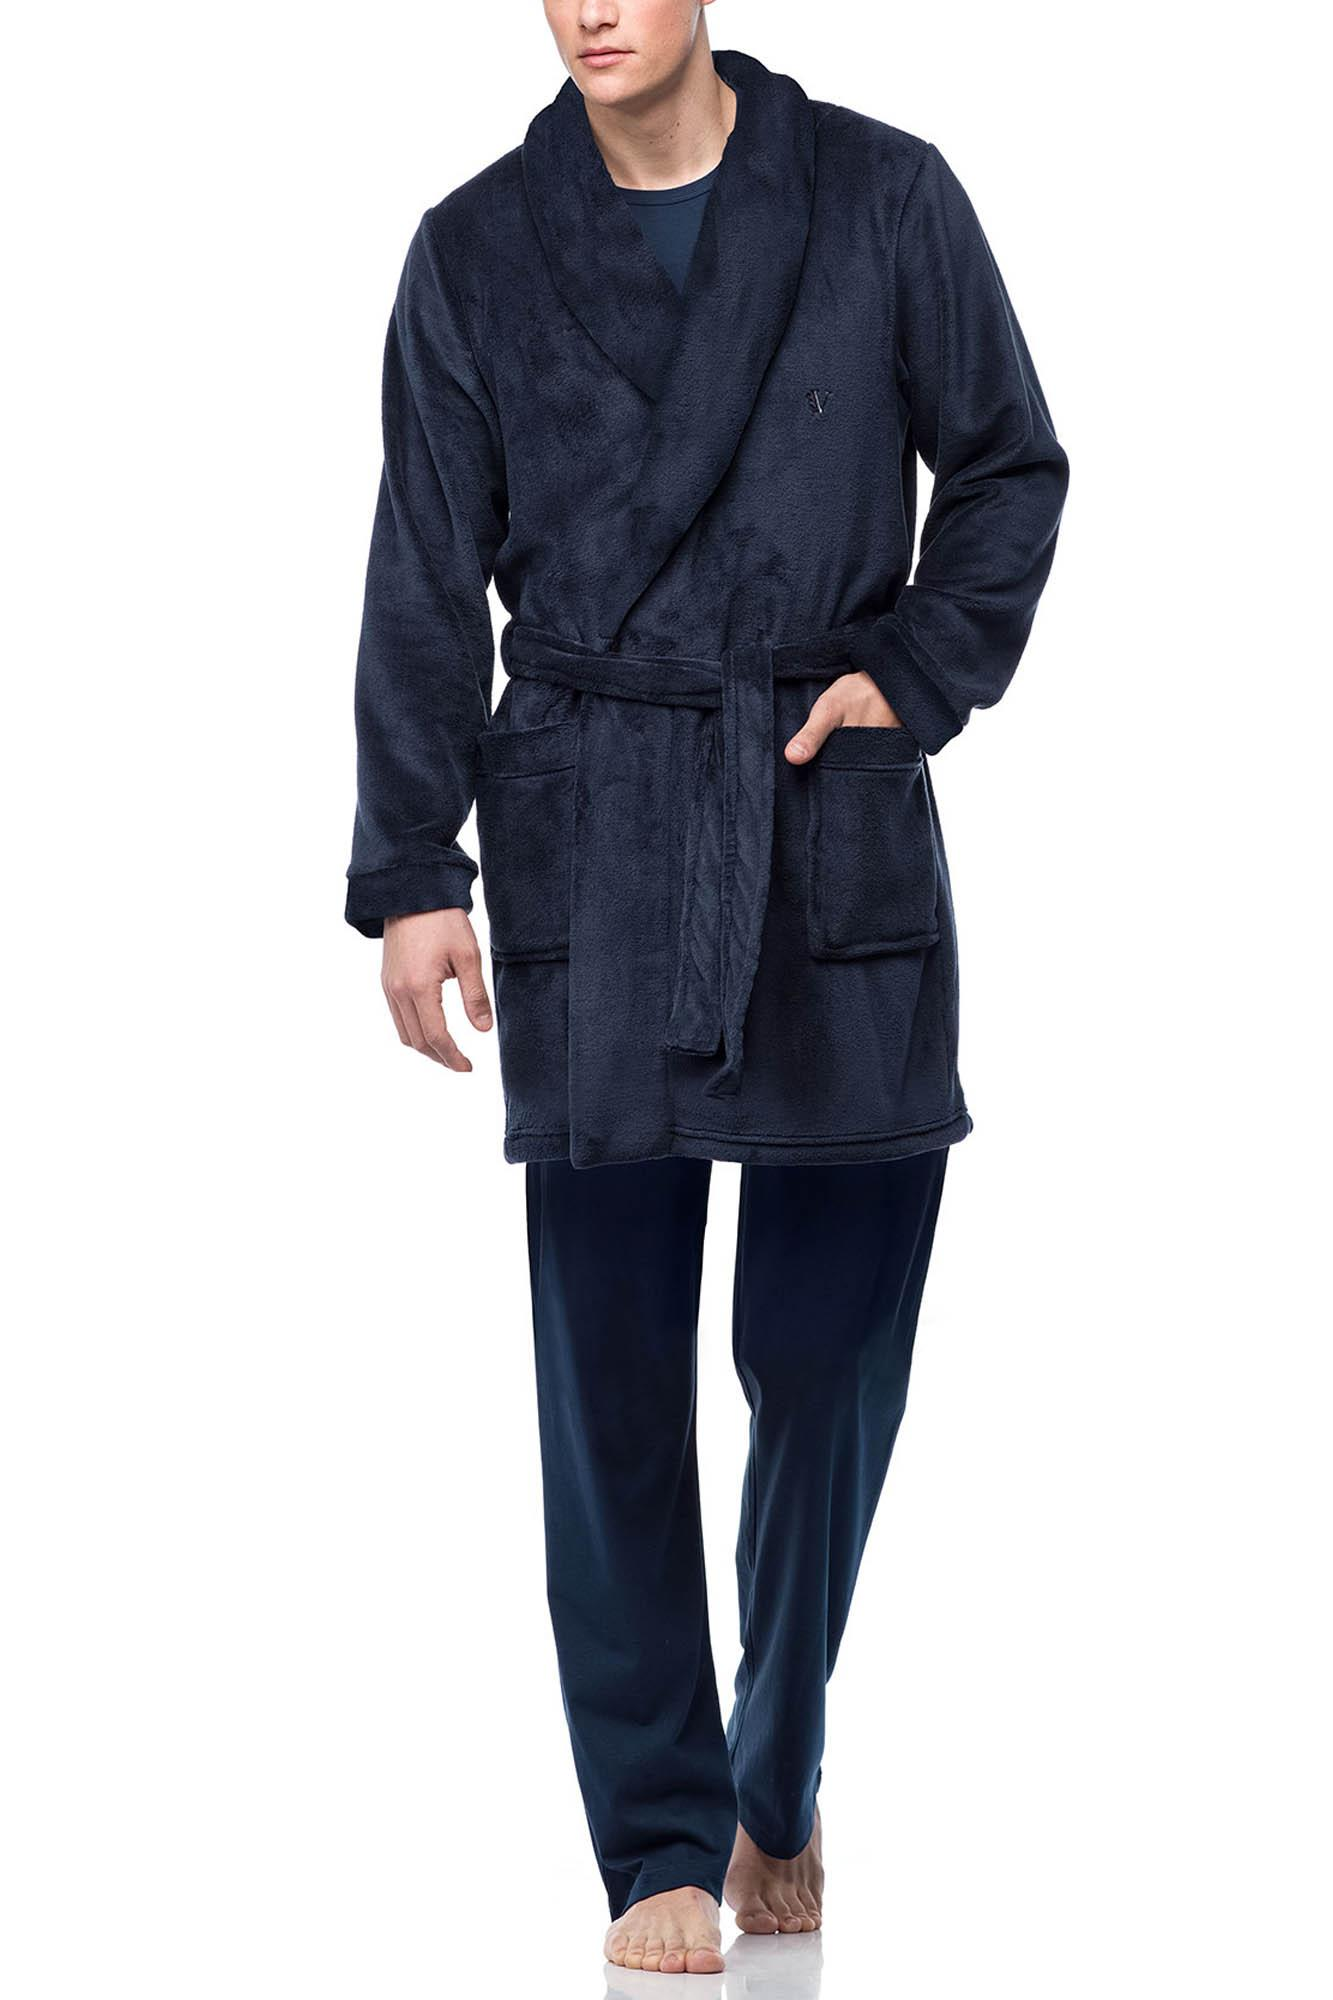 Men's Plain Robe